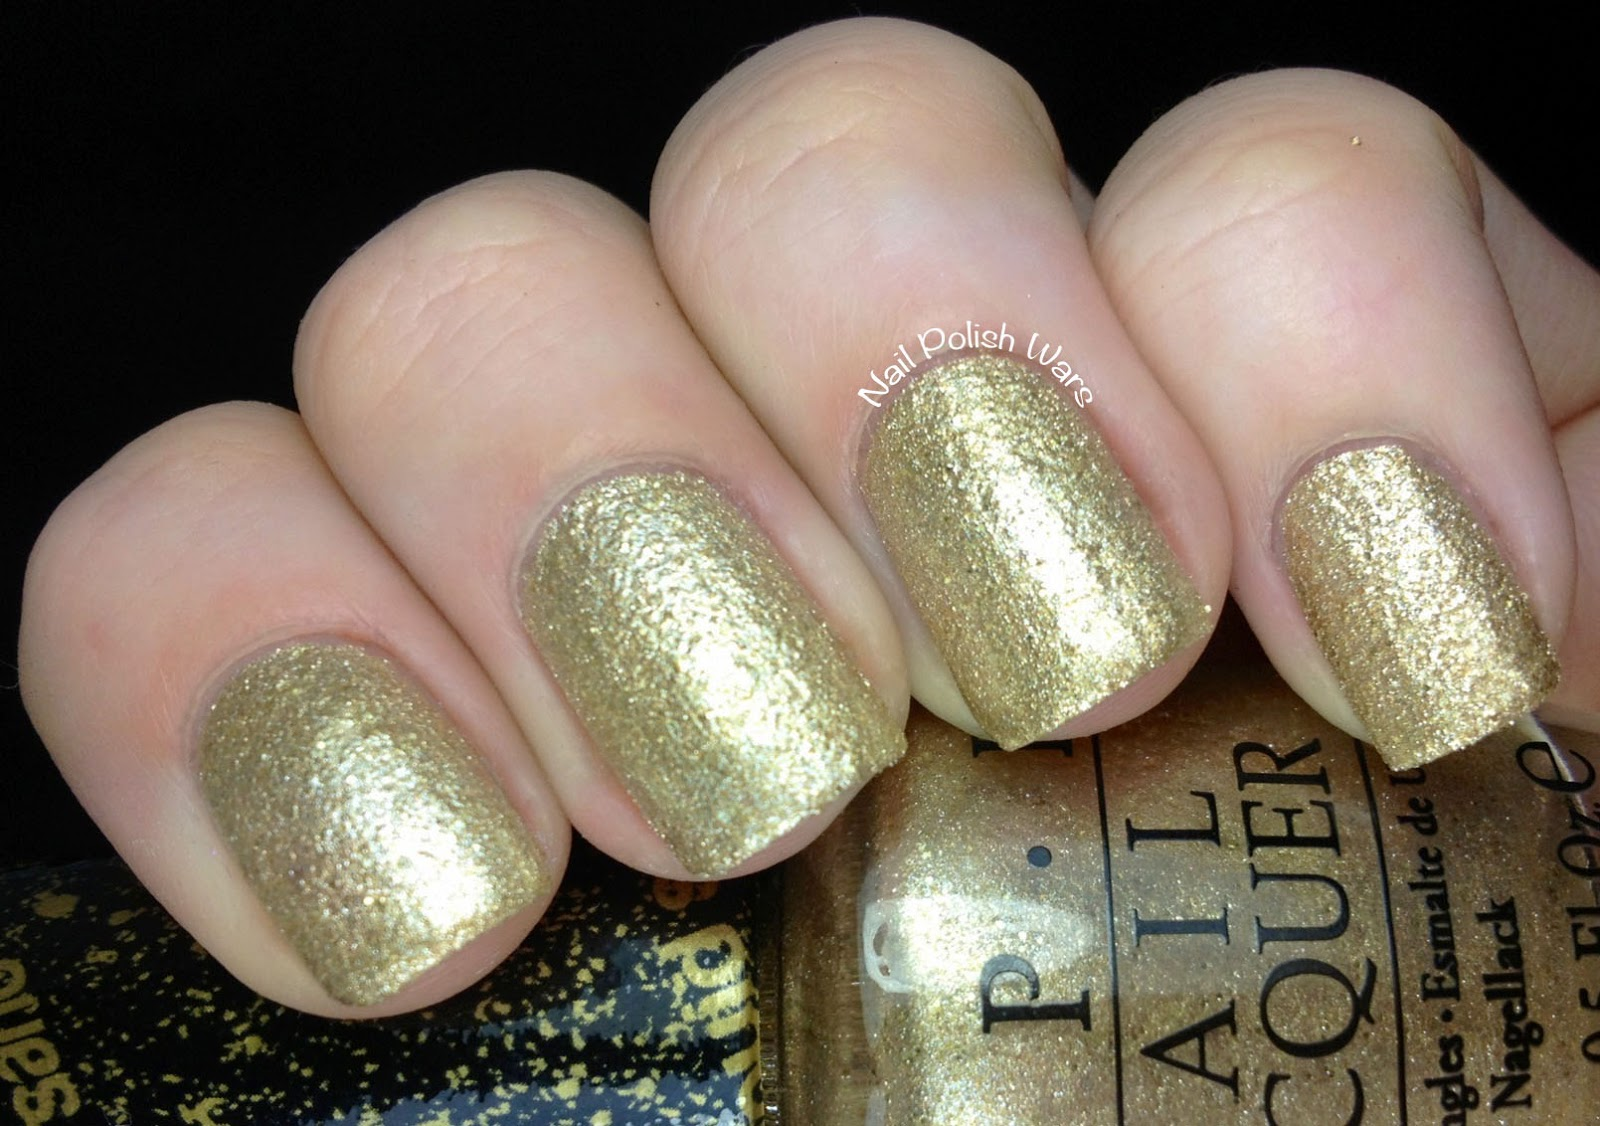 Beautiful Nail Polish In Eye What To Do Huge Designs Of Nail Arts Square Nail And Art Nail Art Designs In Blue Old Nail Art In London WhiteGold Mirror Nail Polish Nail Polish Wars: OPI Bond Girls Collection Swatch \u0026amp; Review